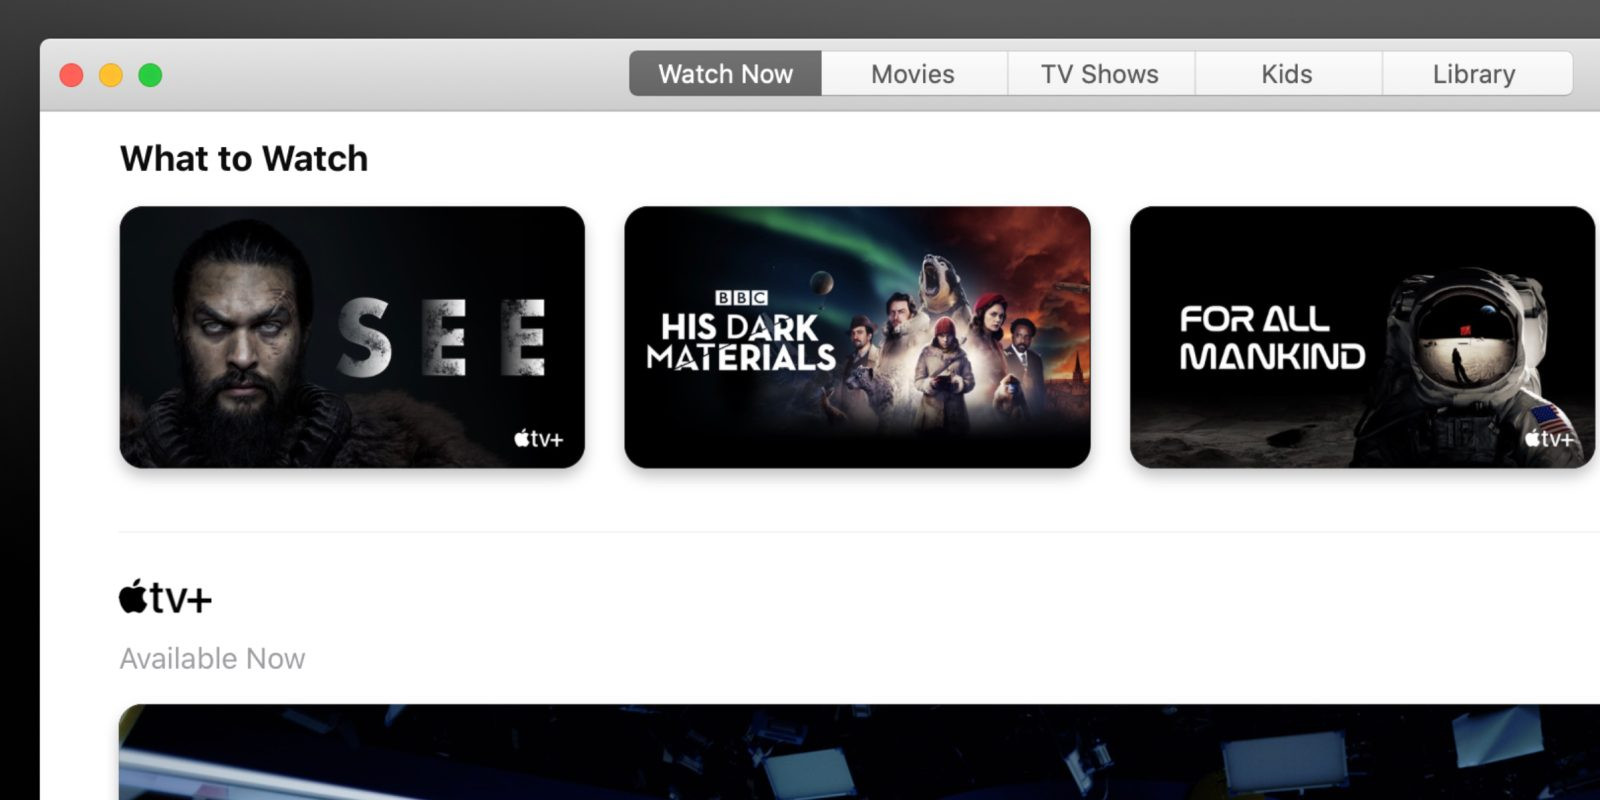 Opinion: The worst part of Apple TV+ is the TV app - 9to5Mac